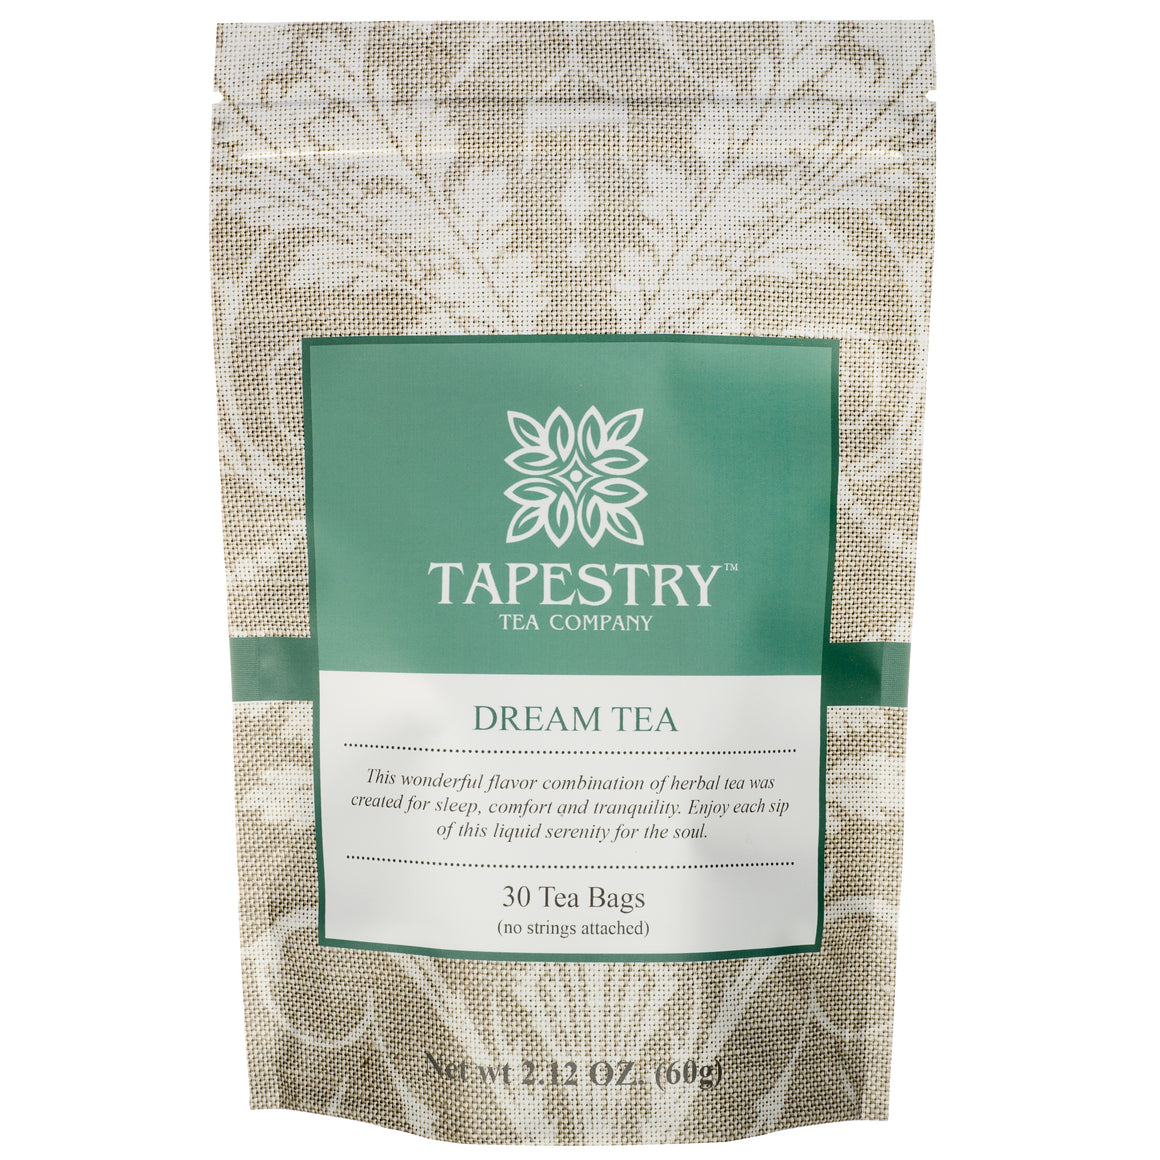 [Dream Tea Pouch] - Tapestry Tea Company